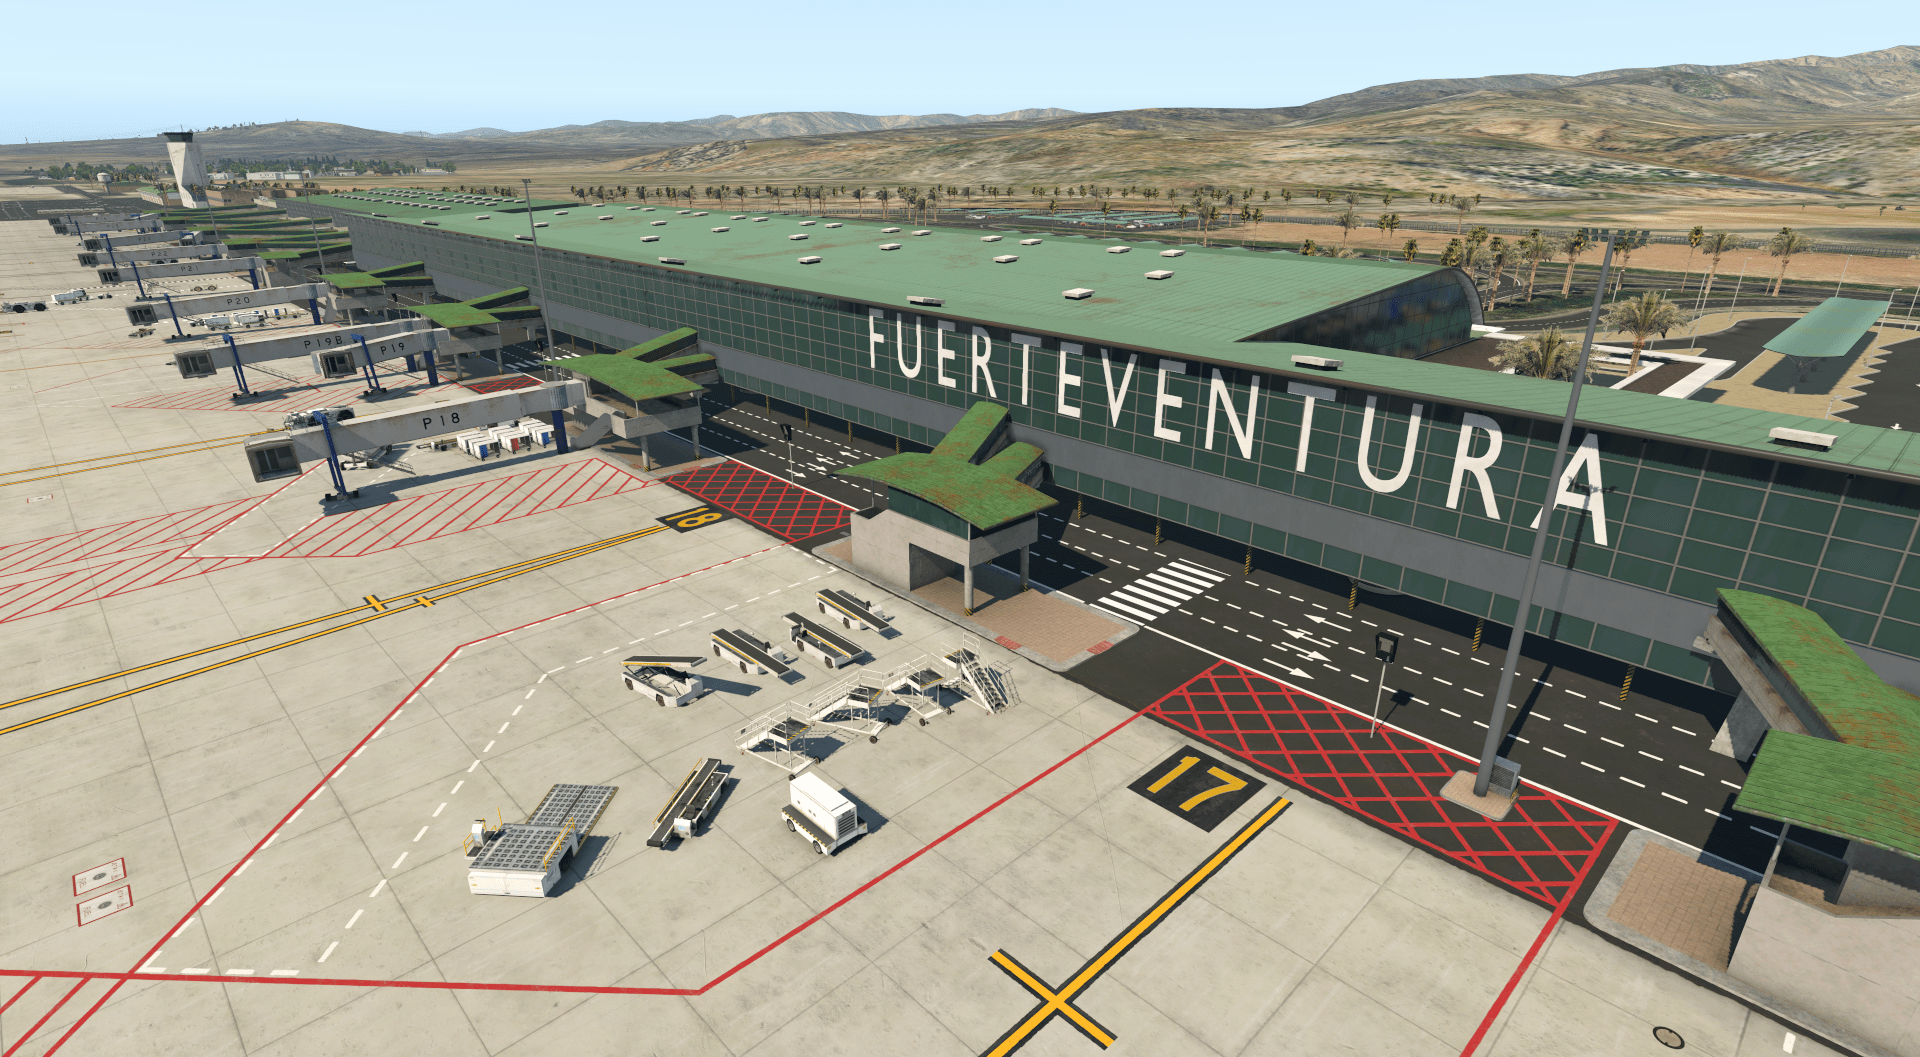 Fuerte1 FLY X Simulations Announces Fuerteventura for Xplane-11